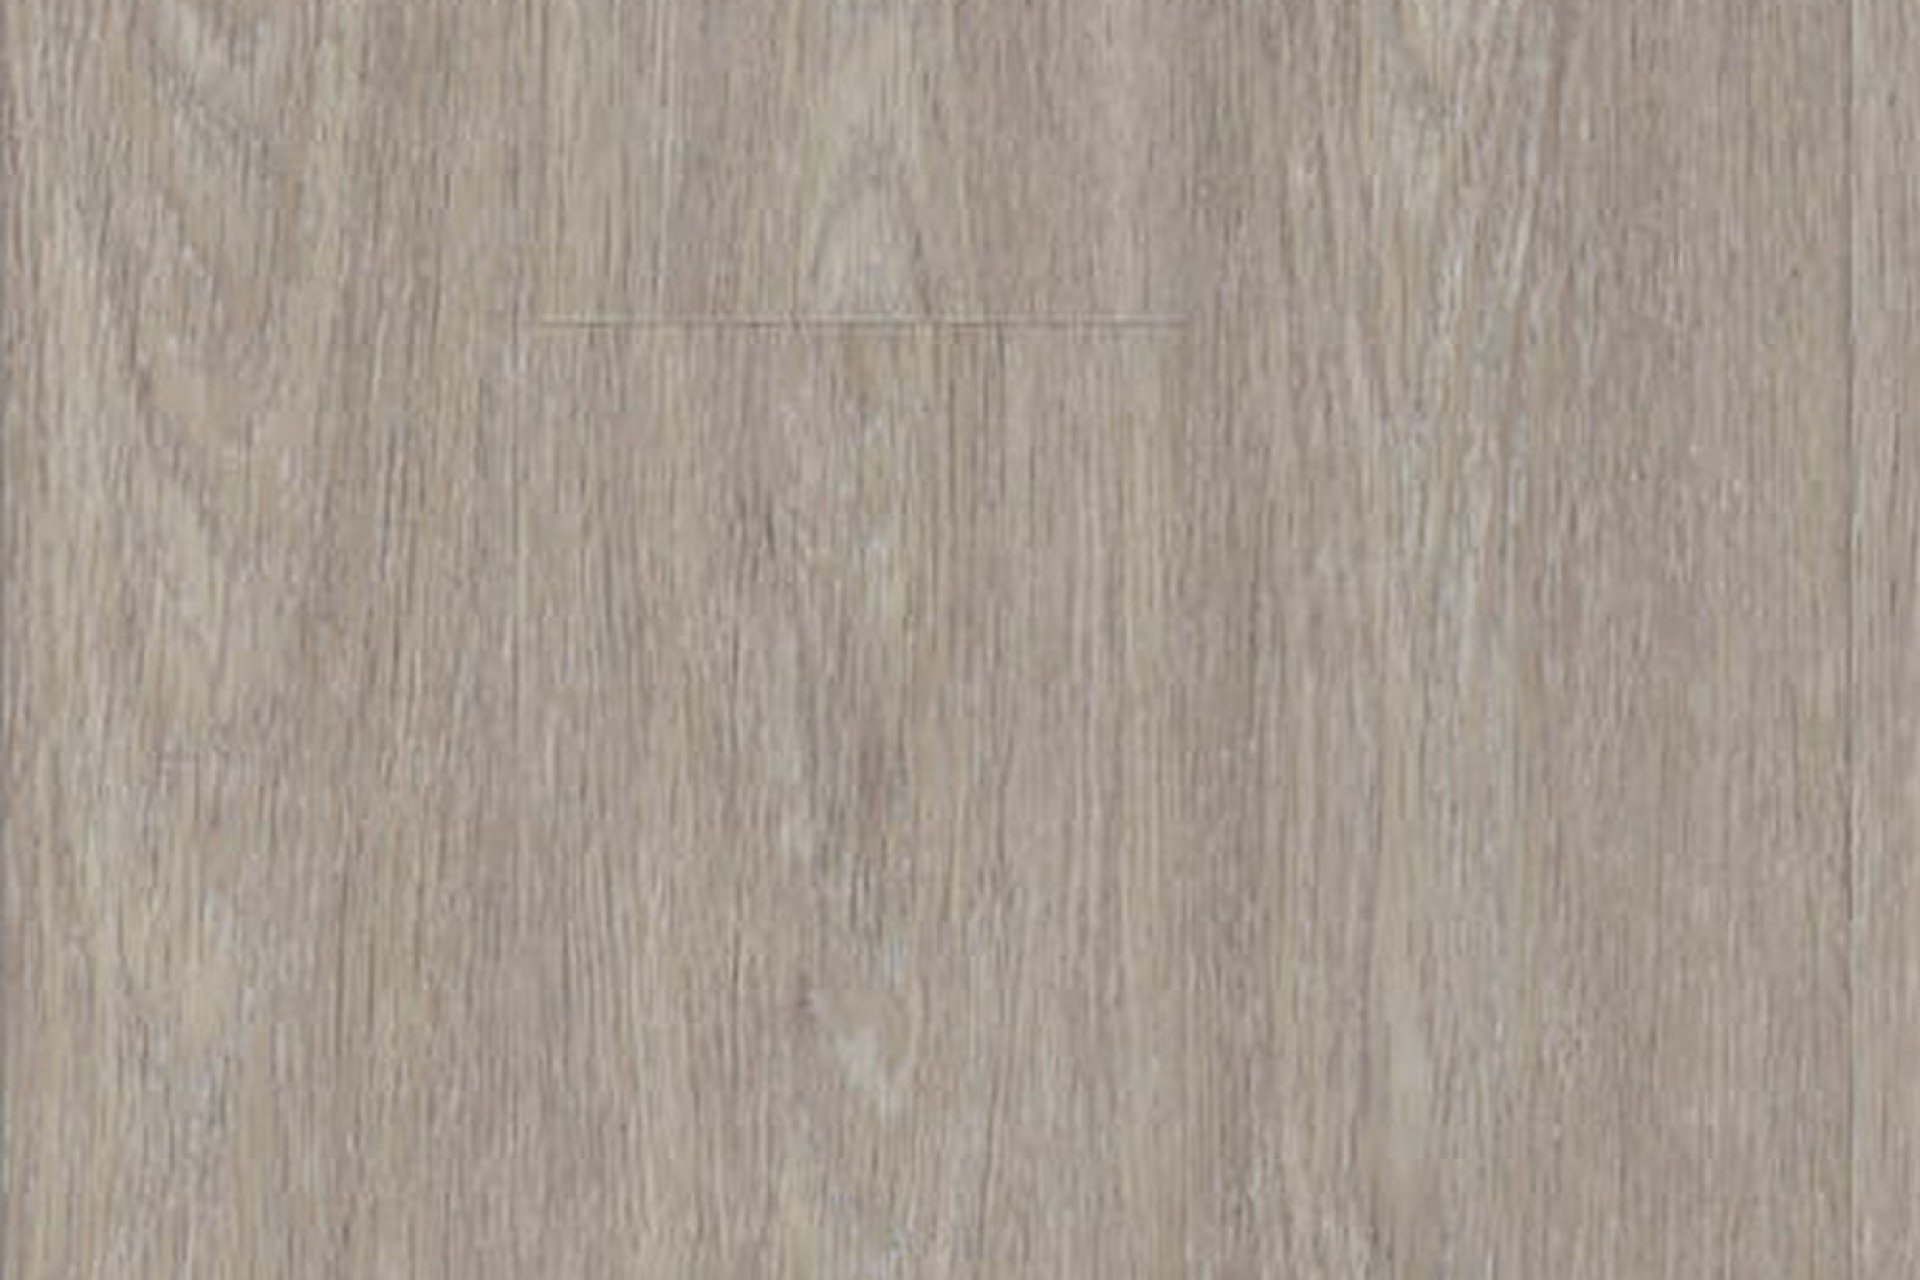 tarkett_starfloor_click_ultimate-35992006-bleached_oak_brown